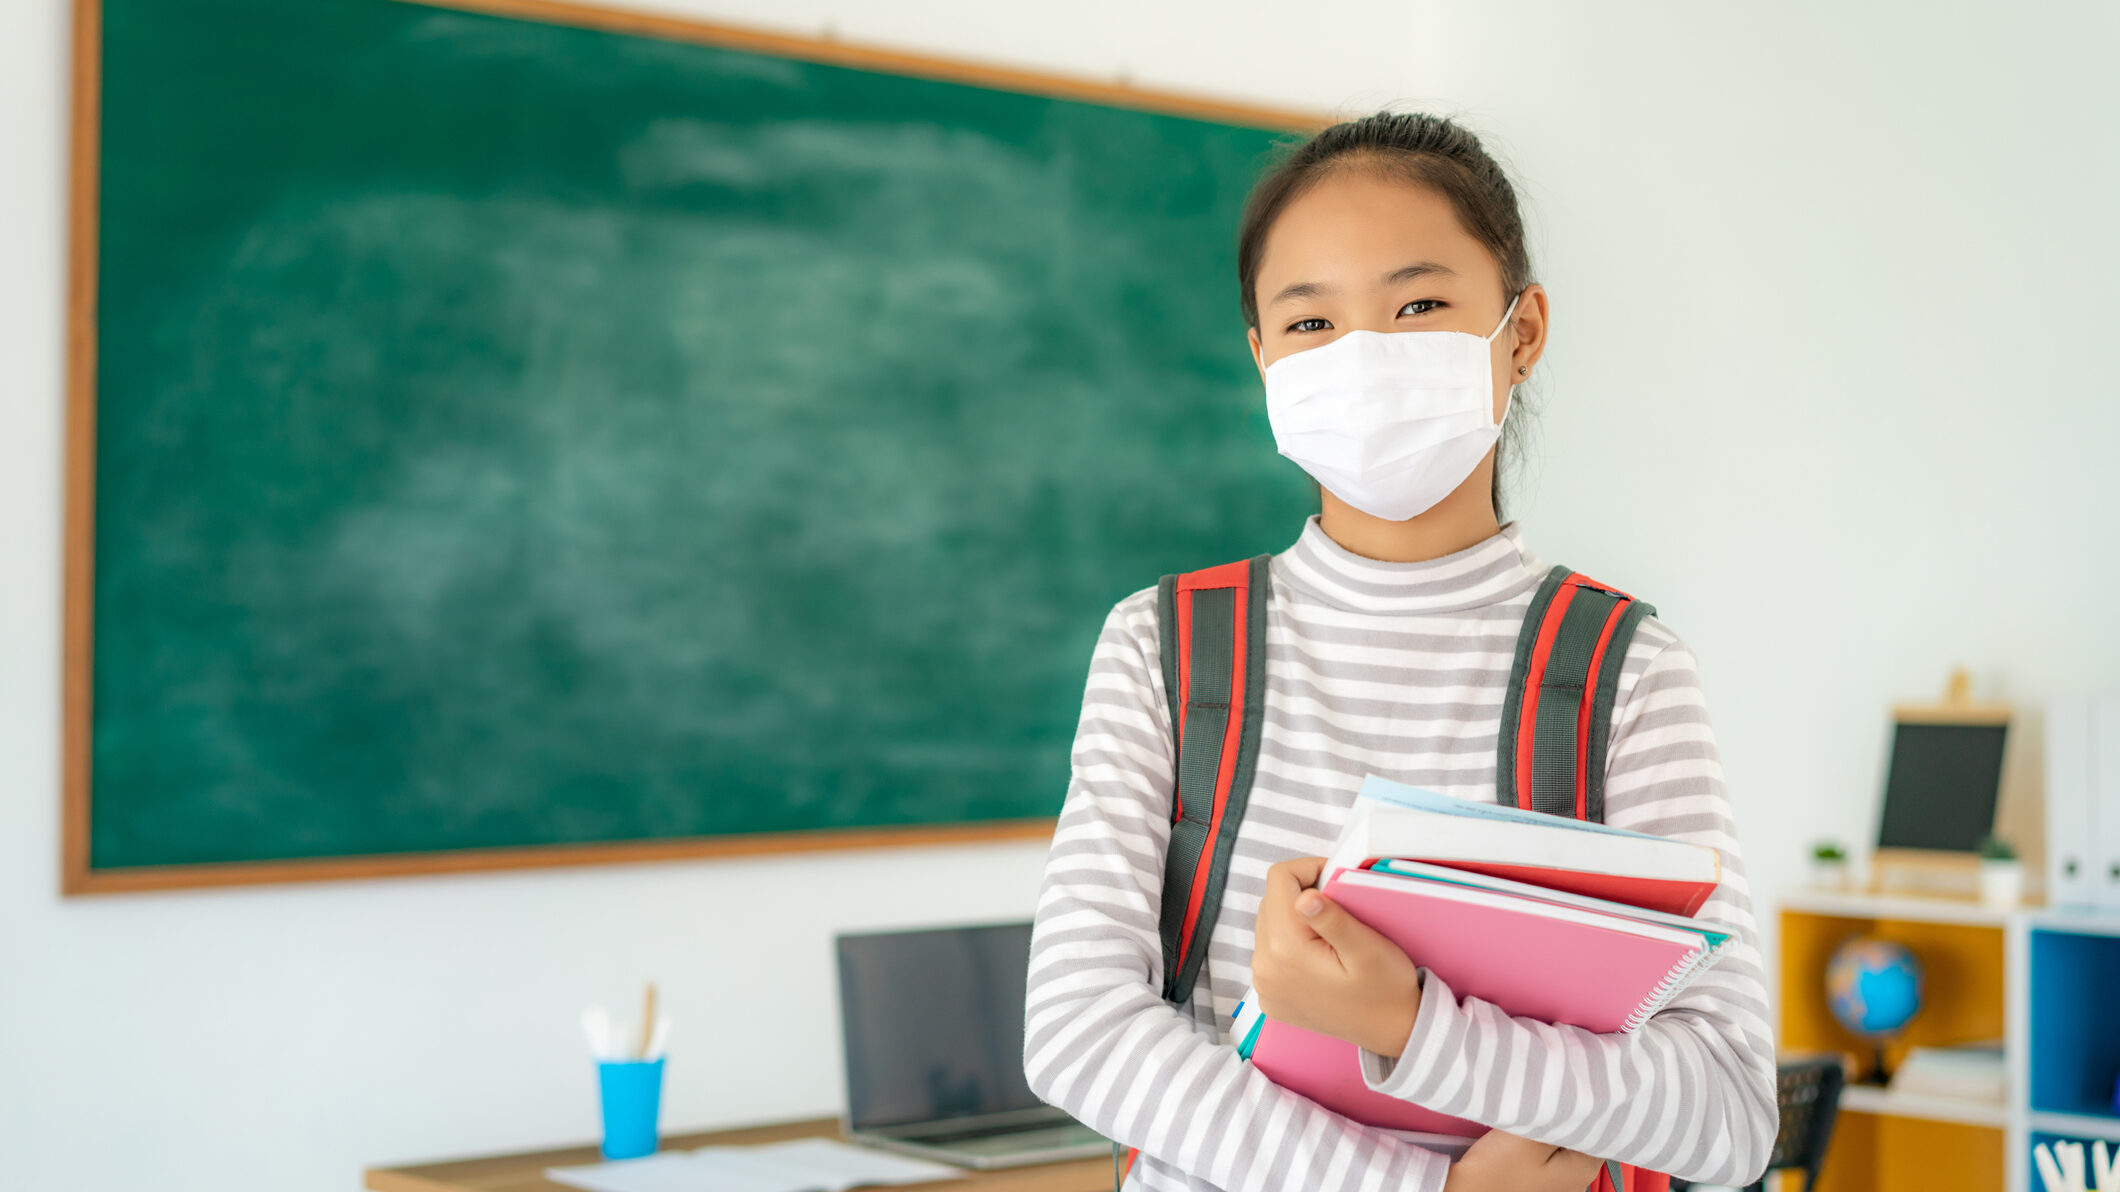 Asian primary students girl with backpack and books wearing masks to prevent the outbreak of Covid 19 in classroom while back to school reopen their school, New normal for education concept.